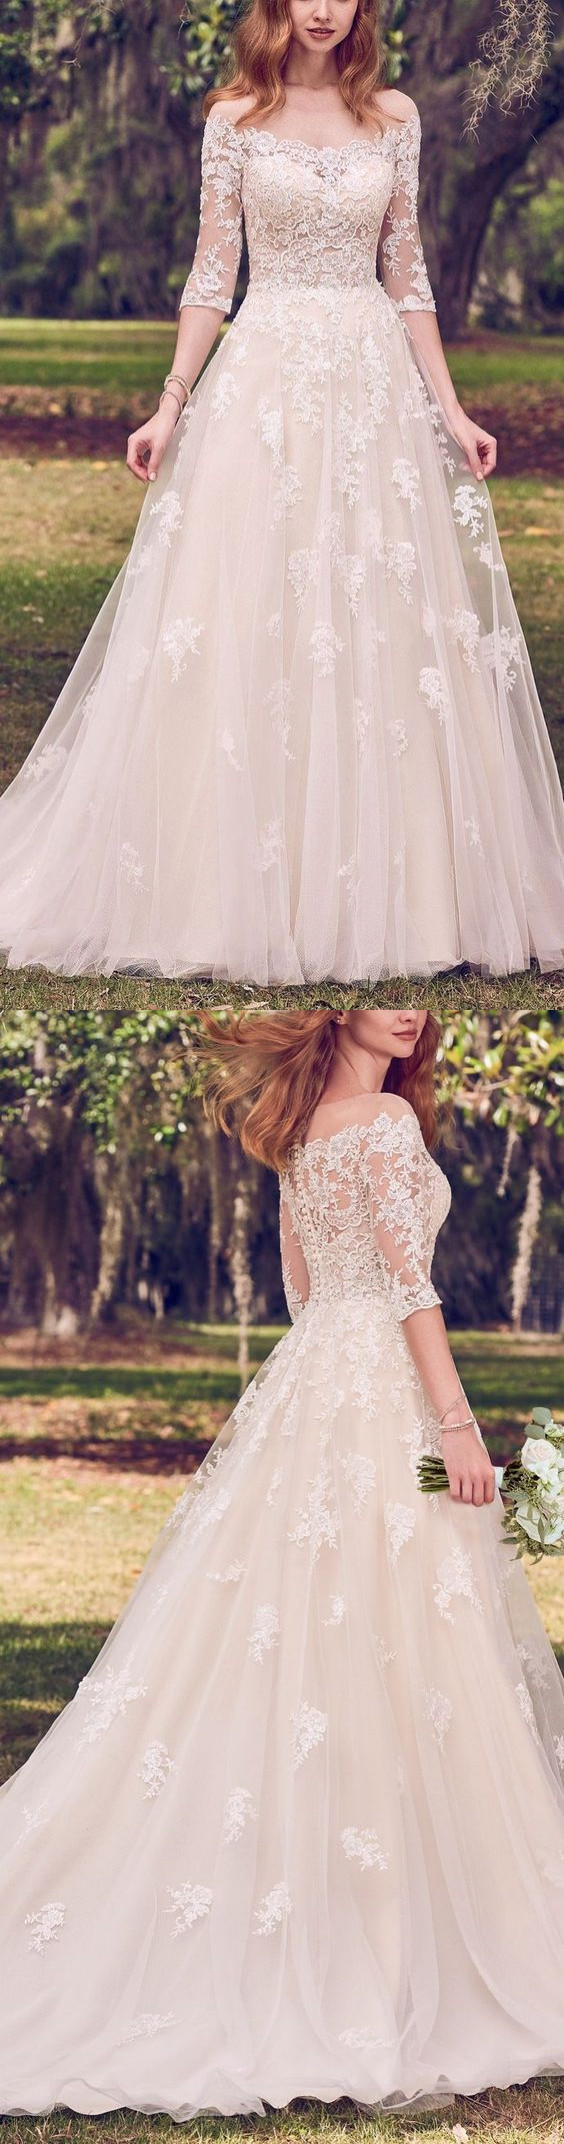 Gorgeous Lace White Wedding Dresses,Half Sleeves Appliques Tulle Bridal